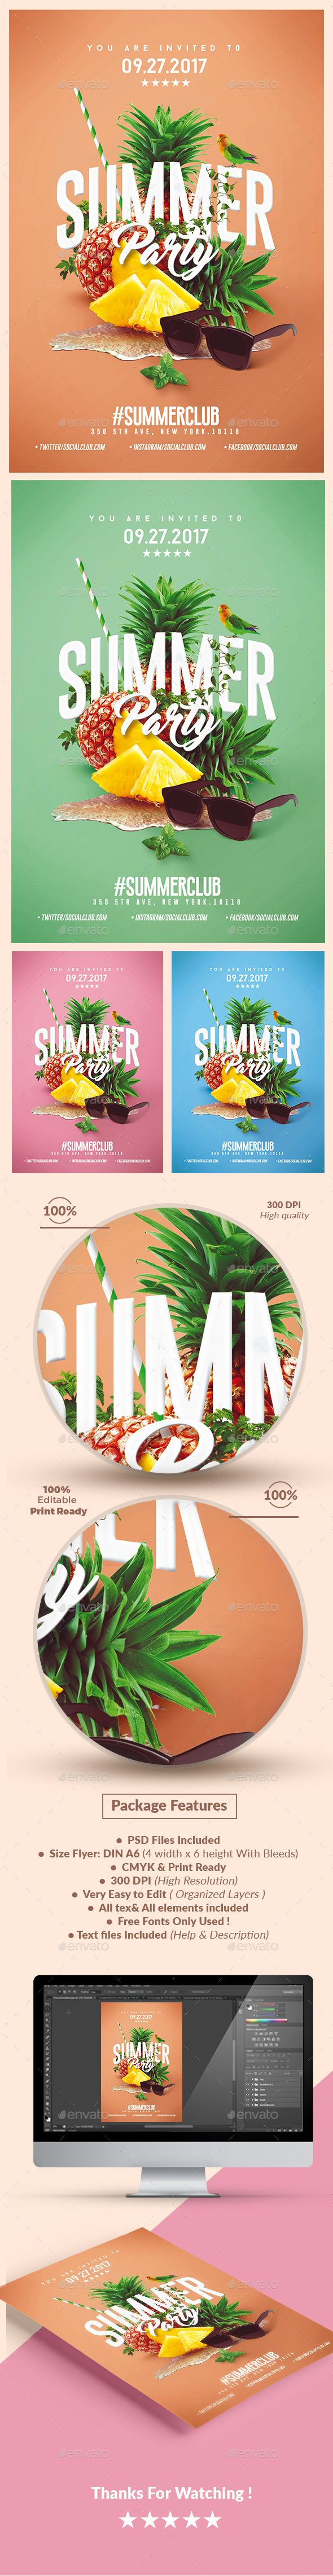 Amazing ! 'Fresh Summer Party | Psd Flyer Templates' on #EnvatoMarket by @romecreation #graphicriver https://graphicriver.net/item/fresh-summer-party-psd-flyer-templates/17654343?utm_source=sharetw